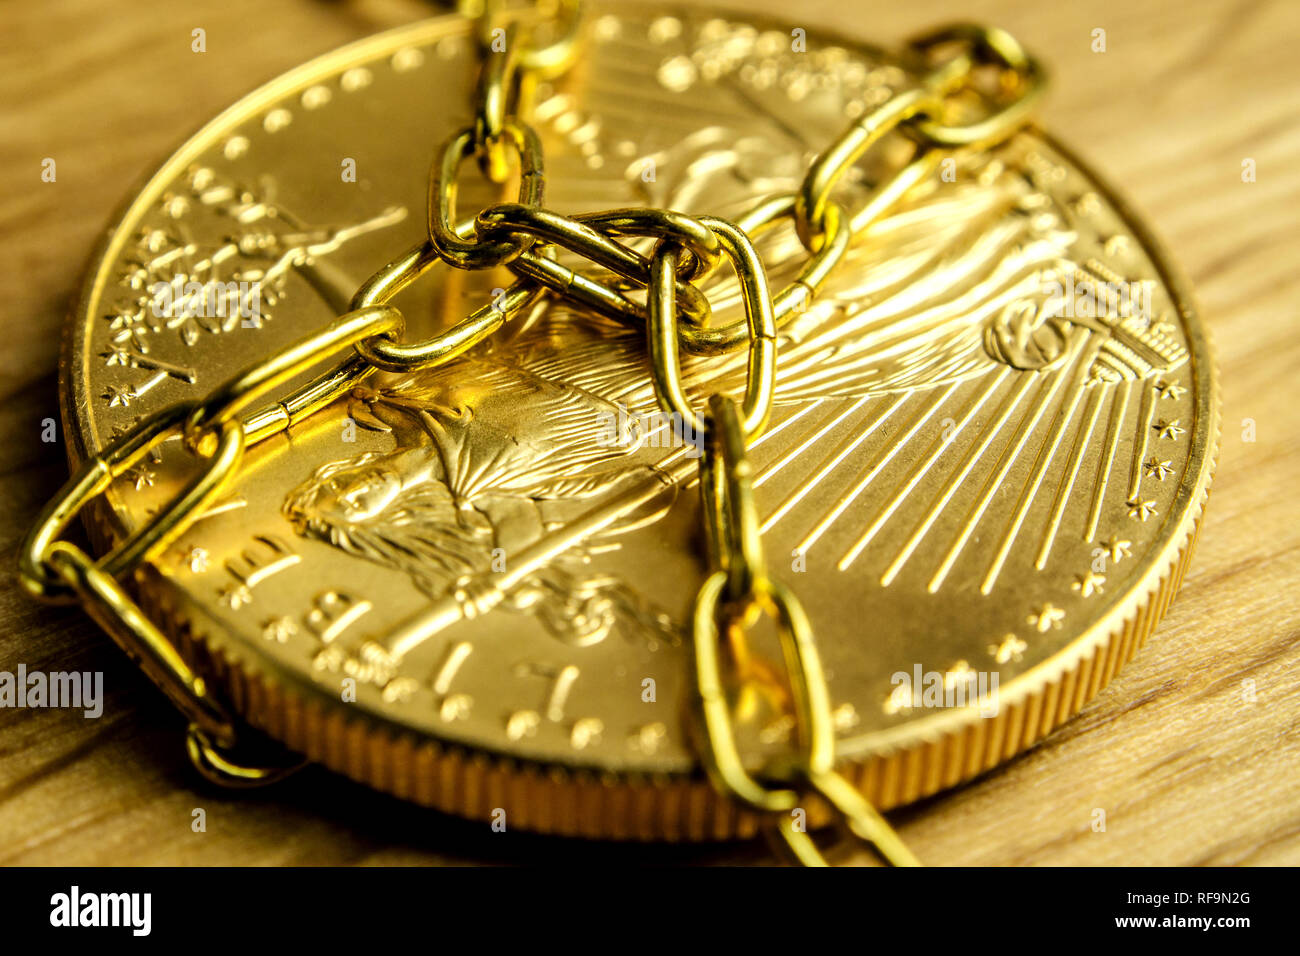 closeup of golden coin in golden chains laying on wooden background Stock Photo